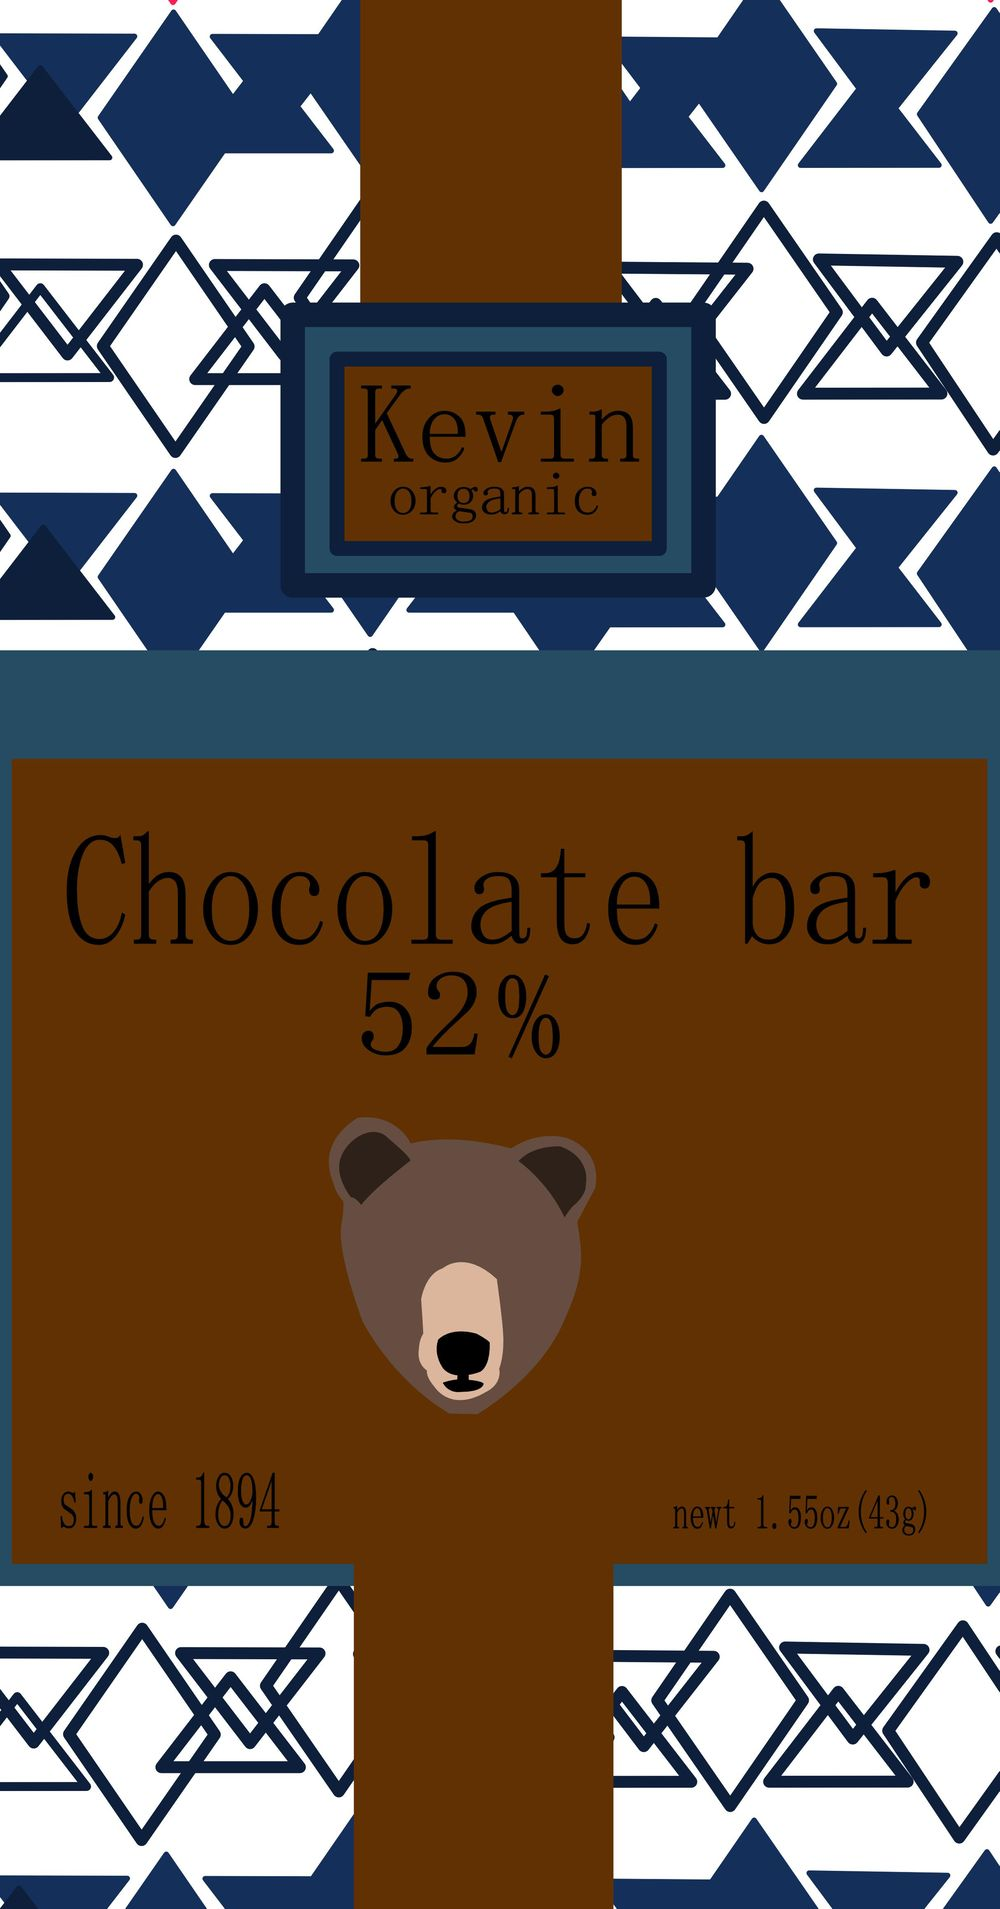 chocolate bar Packaging - image 1 - student project